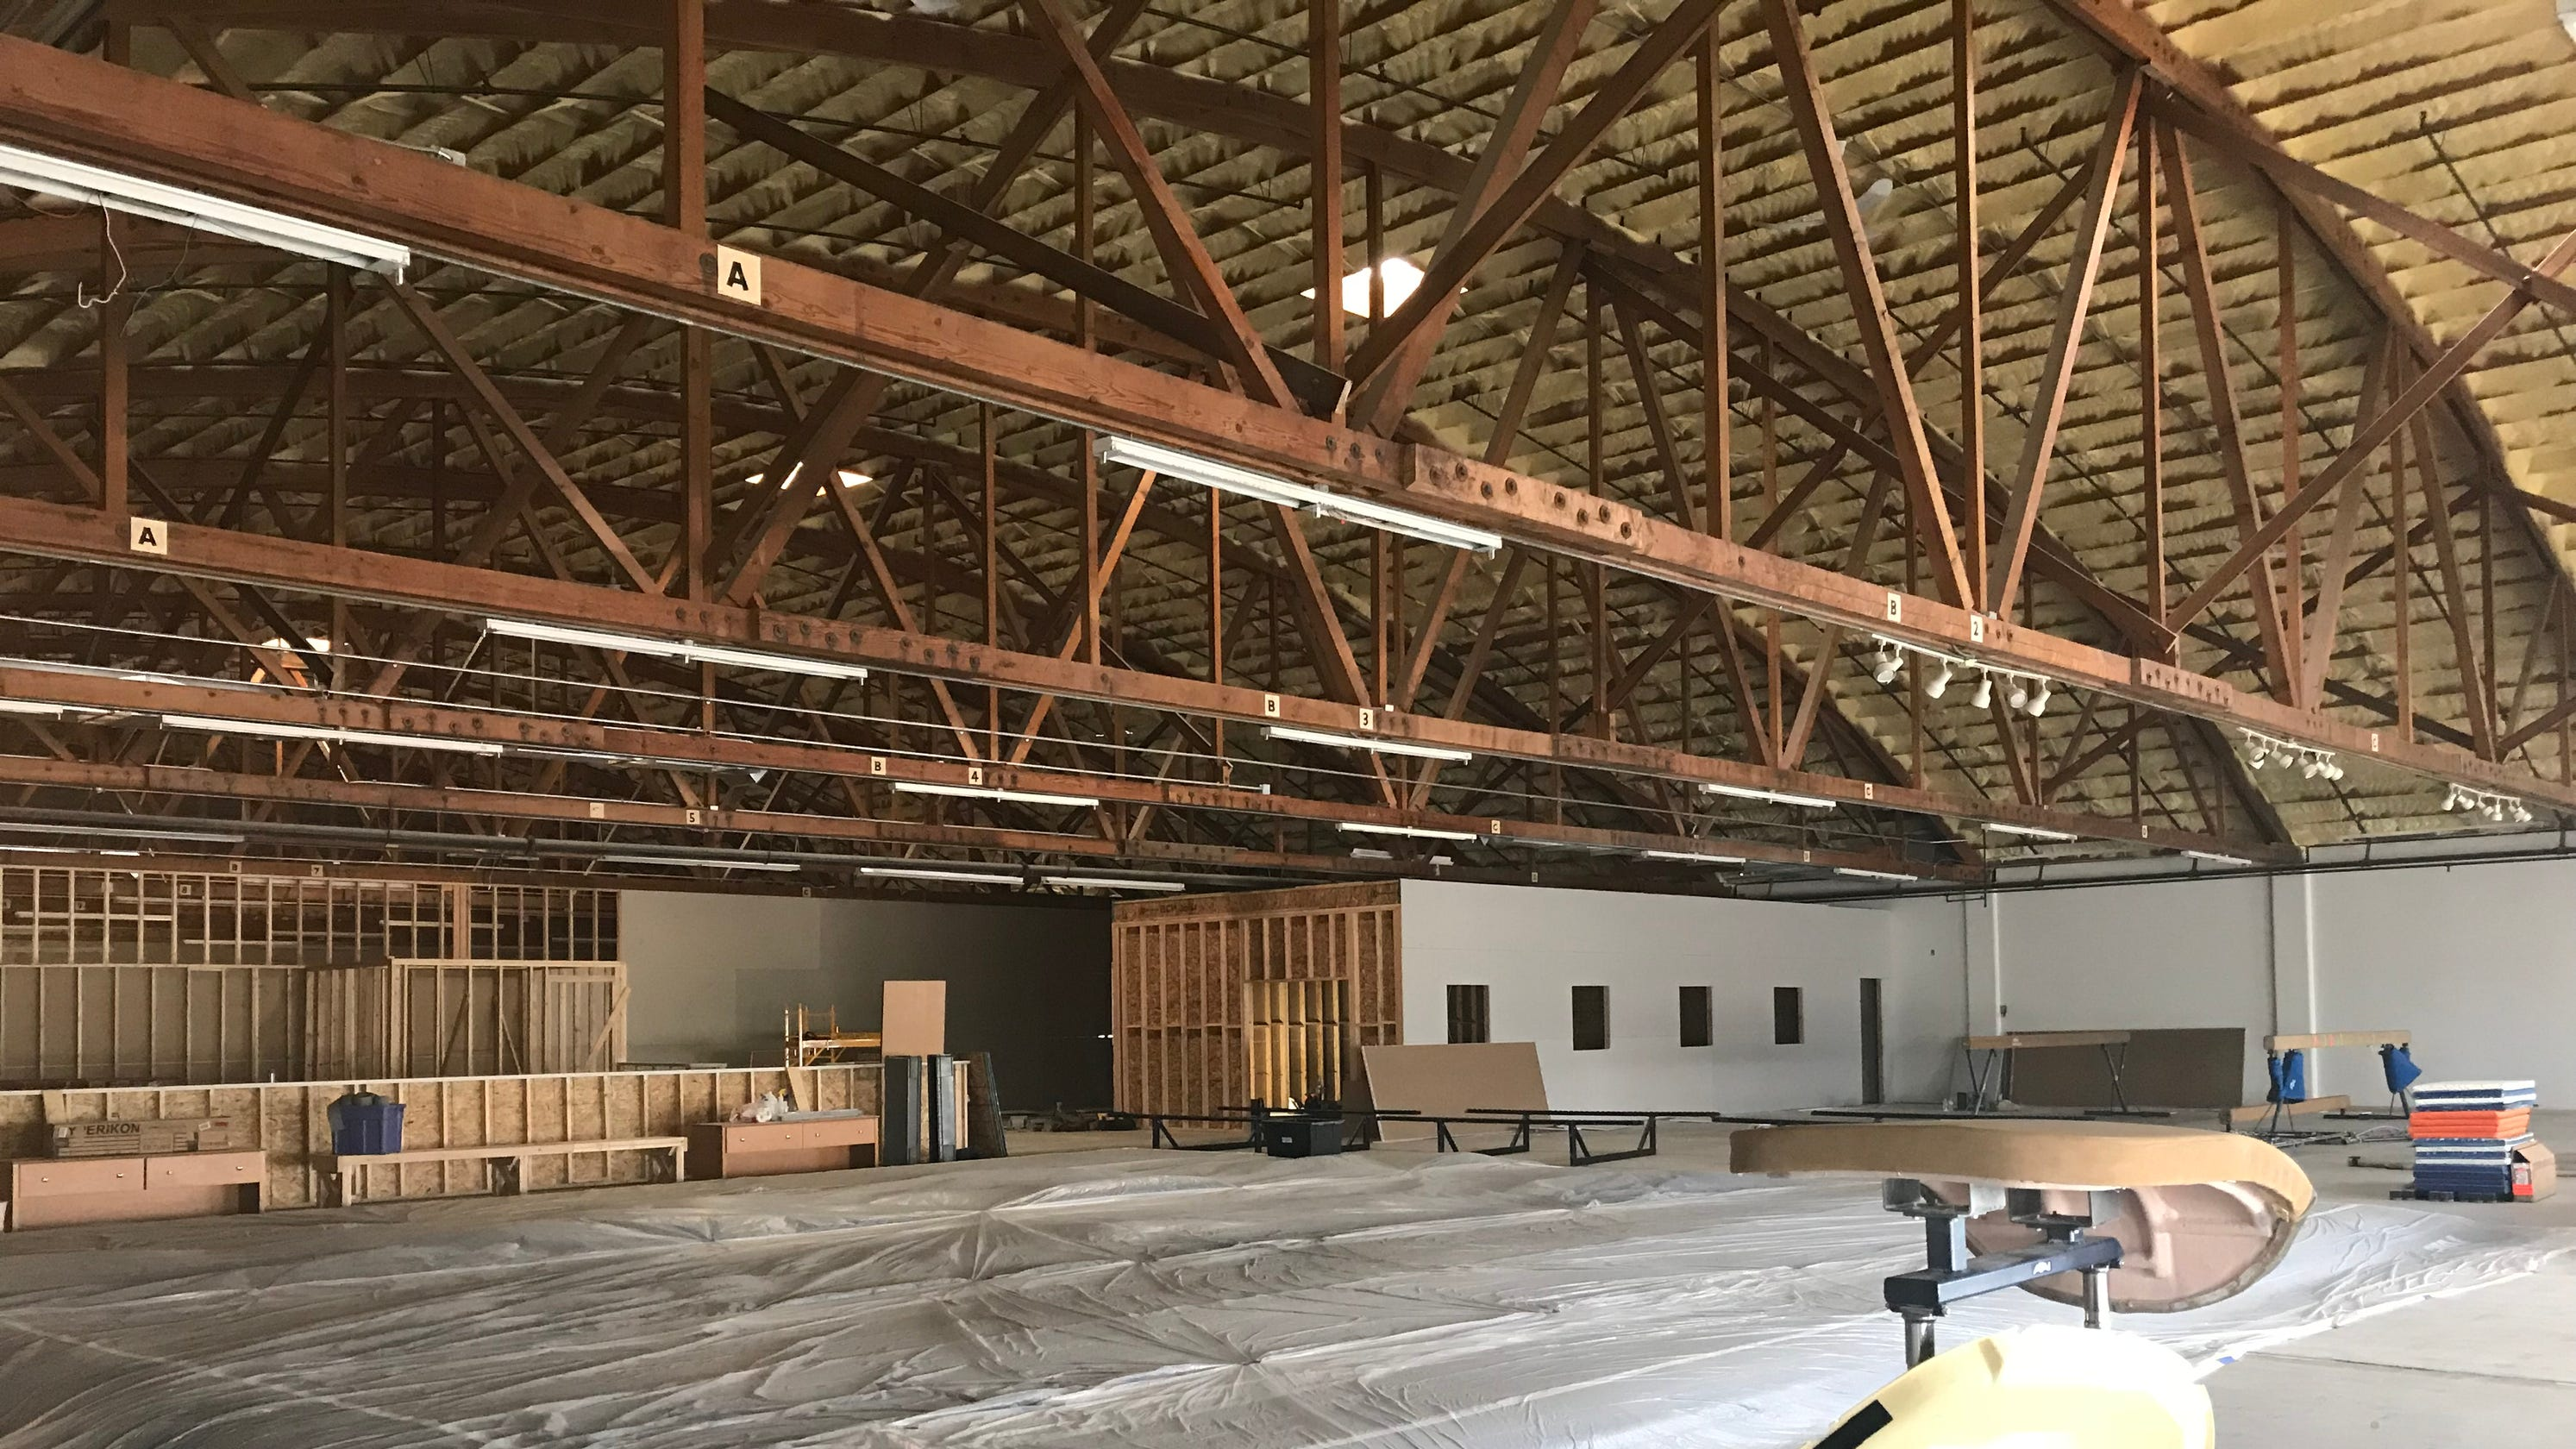 Pacific Galleries Building Revived As Gymnastics Center